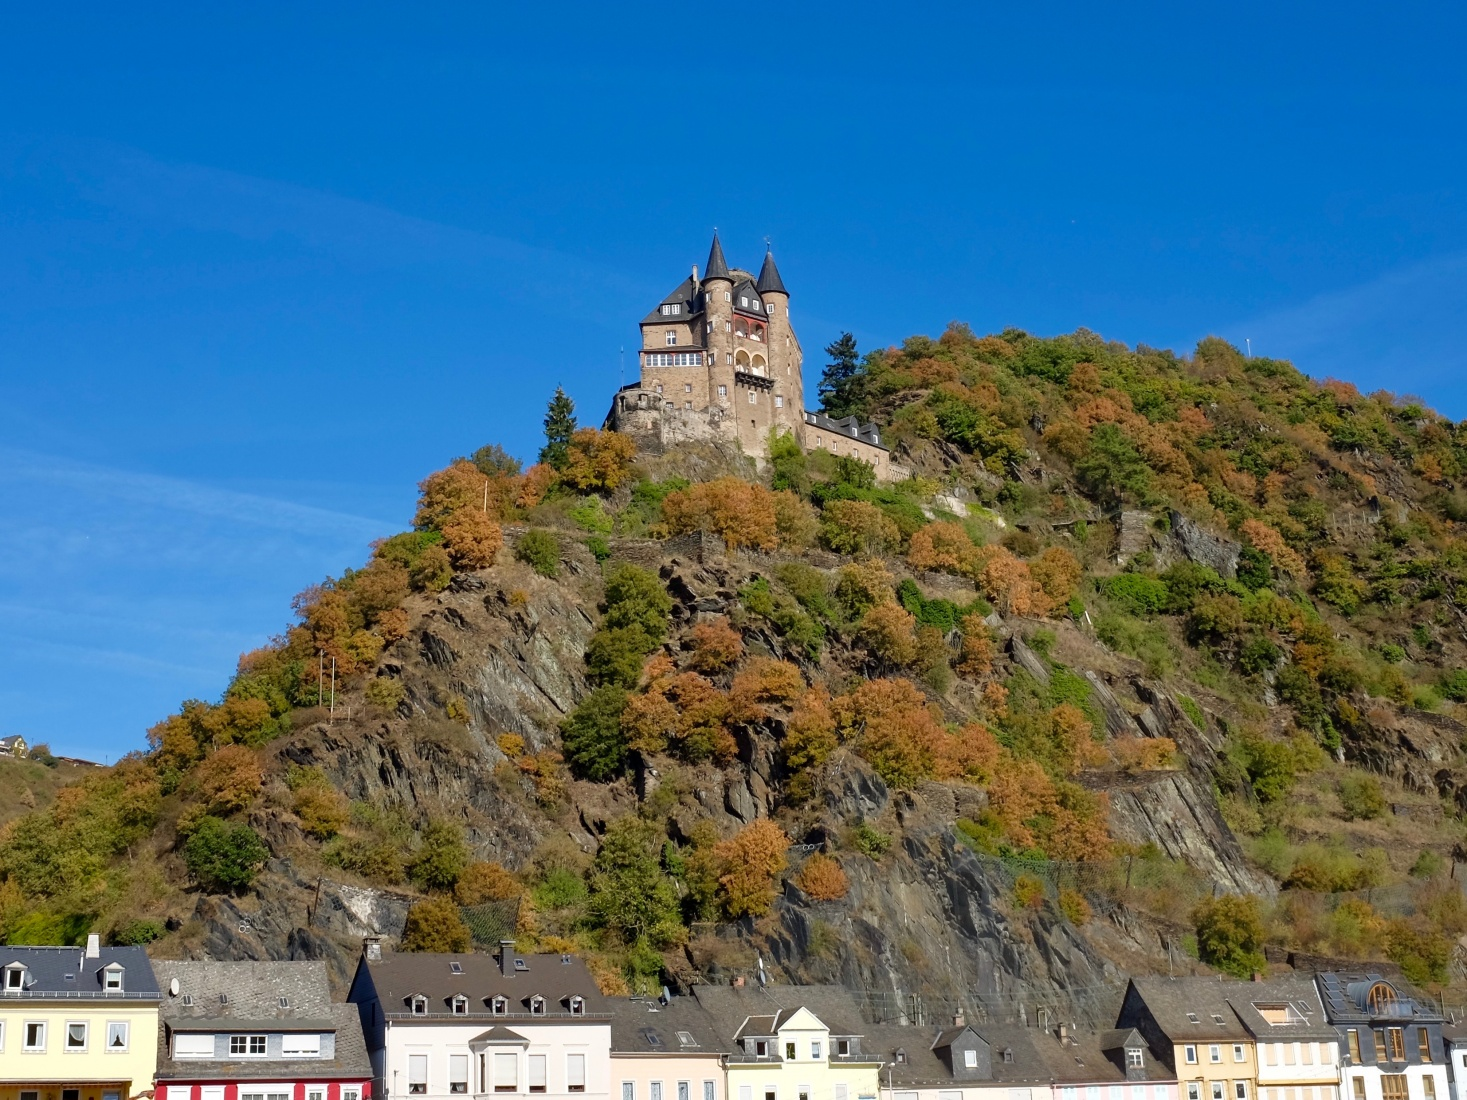 Sailing through the Upper Middle Rhein Valley, not far from the